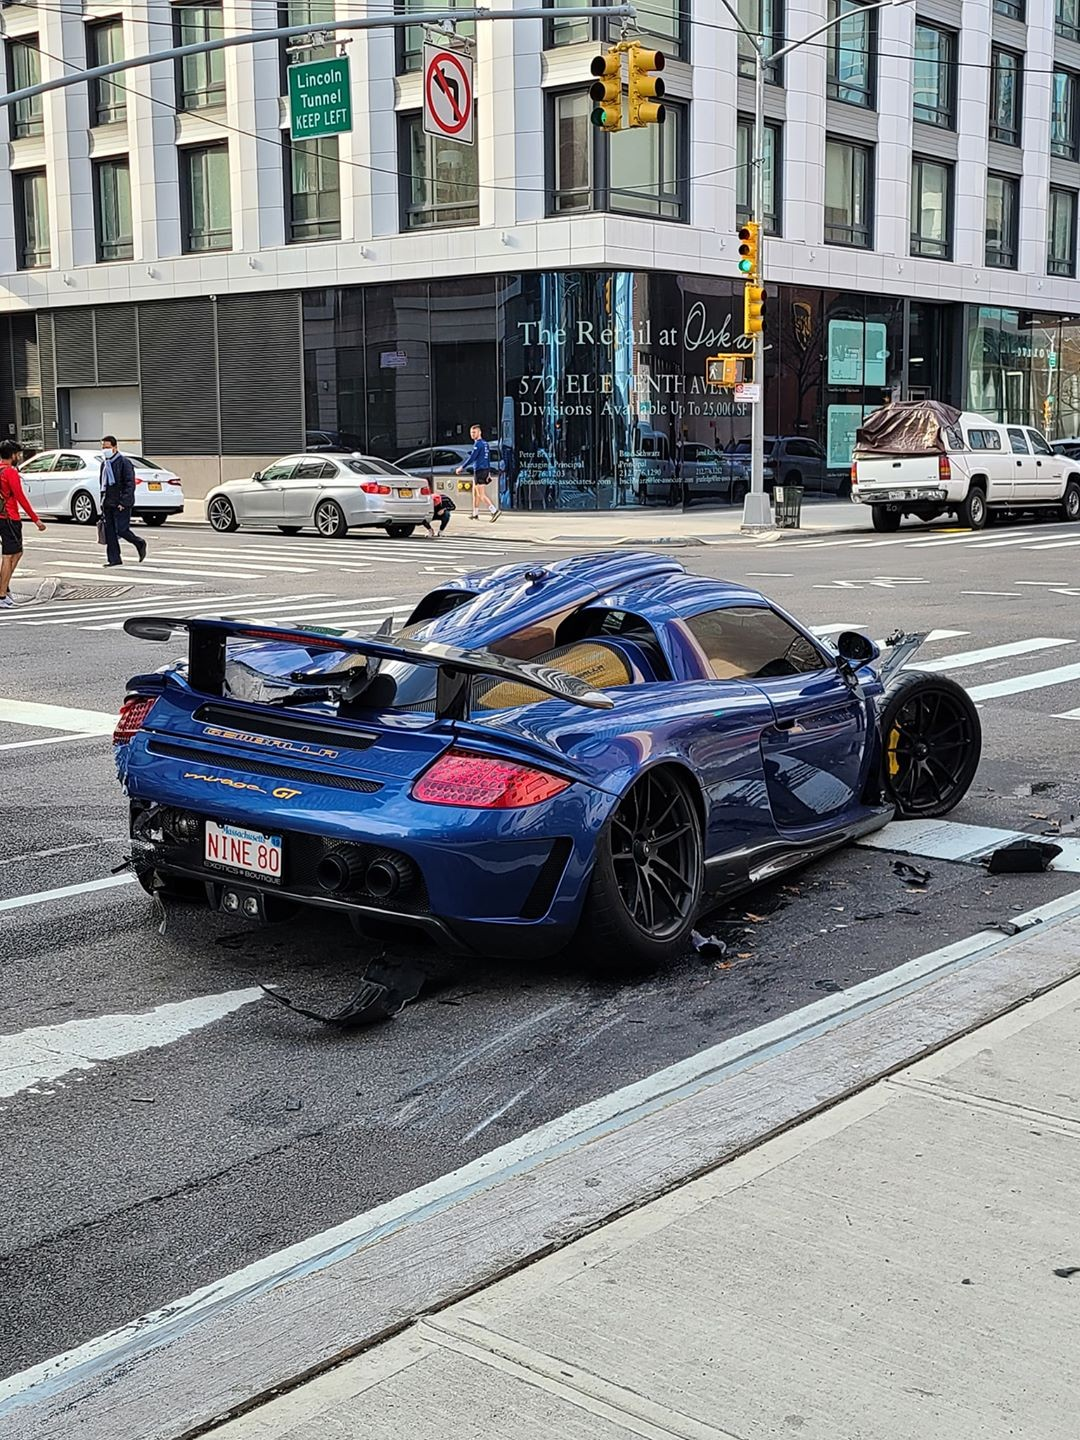 Gemballa Mirage GT accident - Gemballa Mirage GT accident